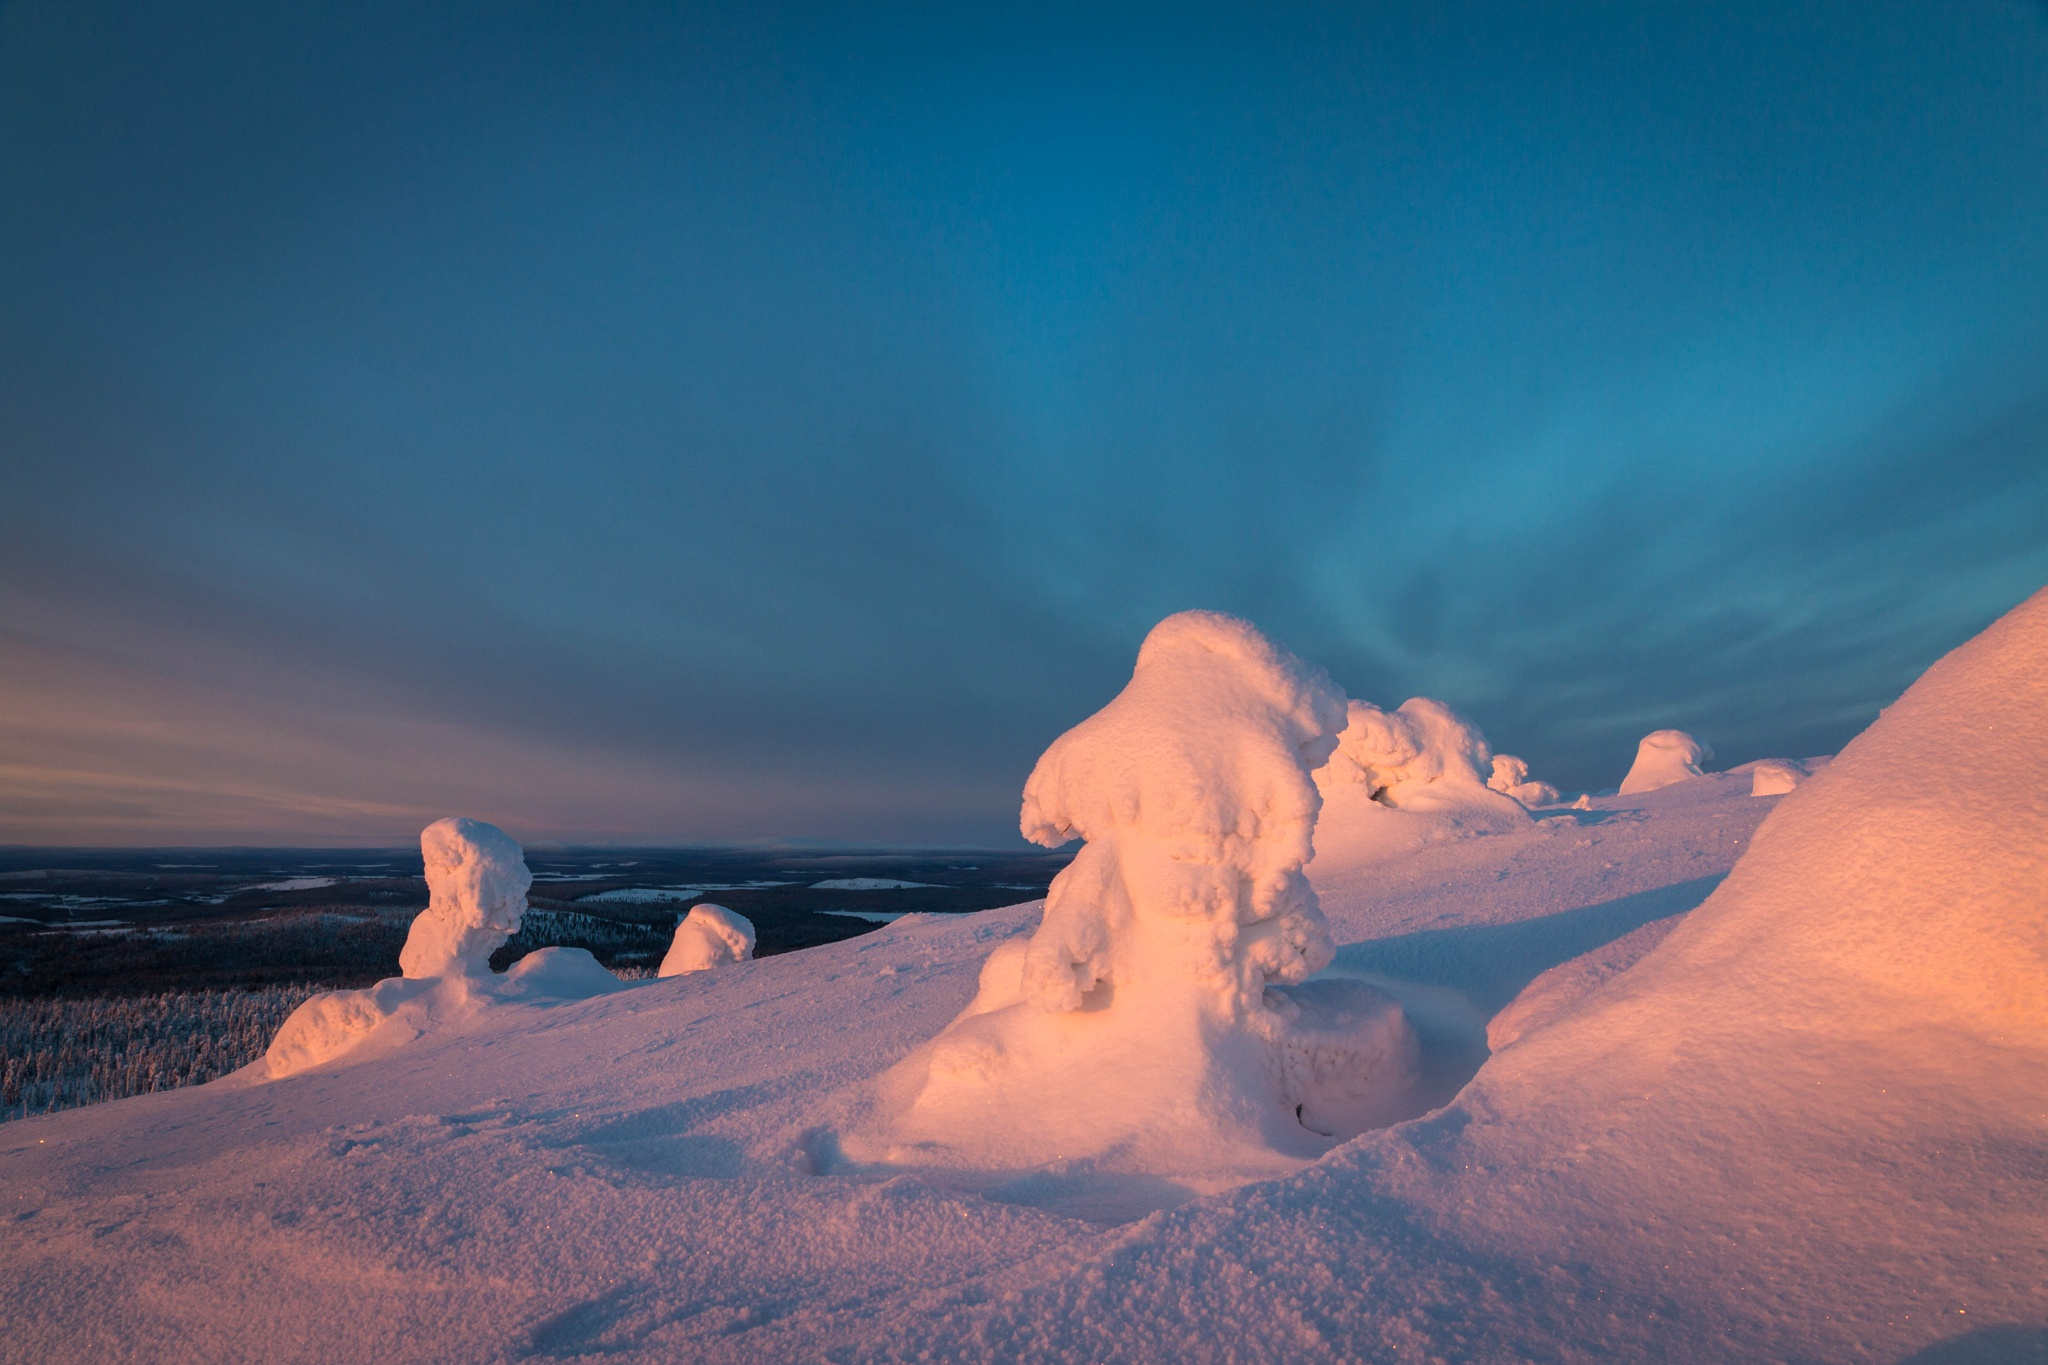 magic winter by tommybeyer79